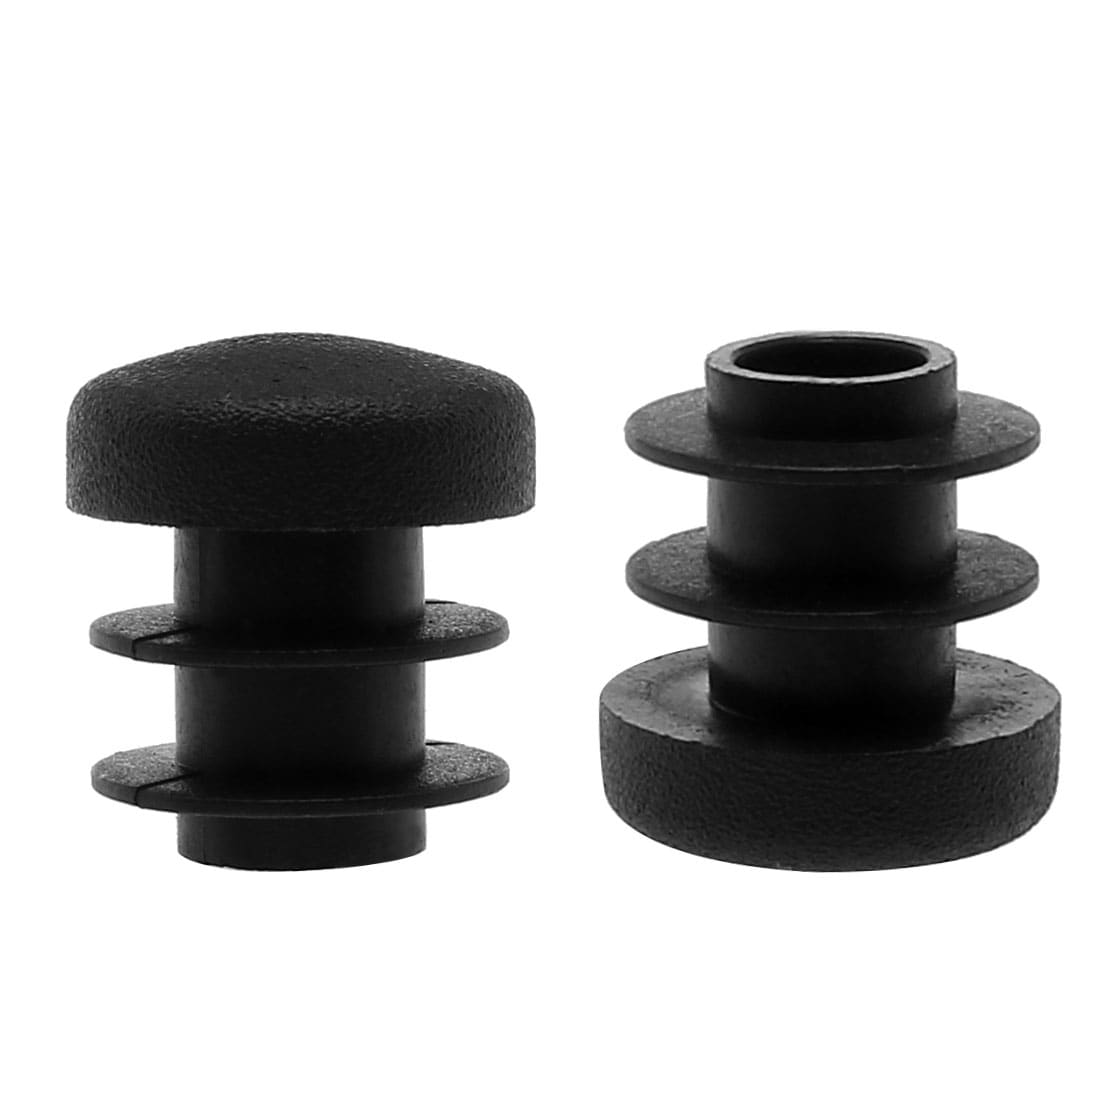 Feet Table Chair Pipe Tubing End Cover Caps 16mm -50mm 4pcs//set Black Rubber